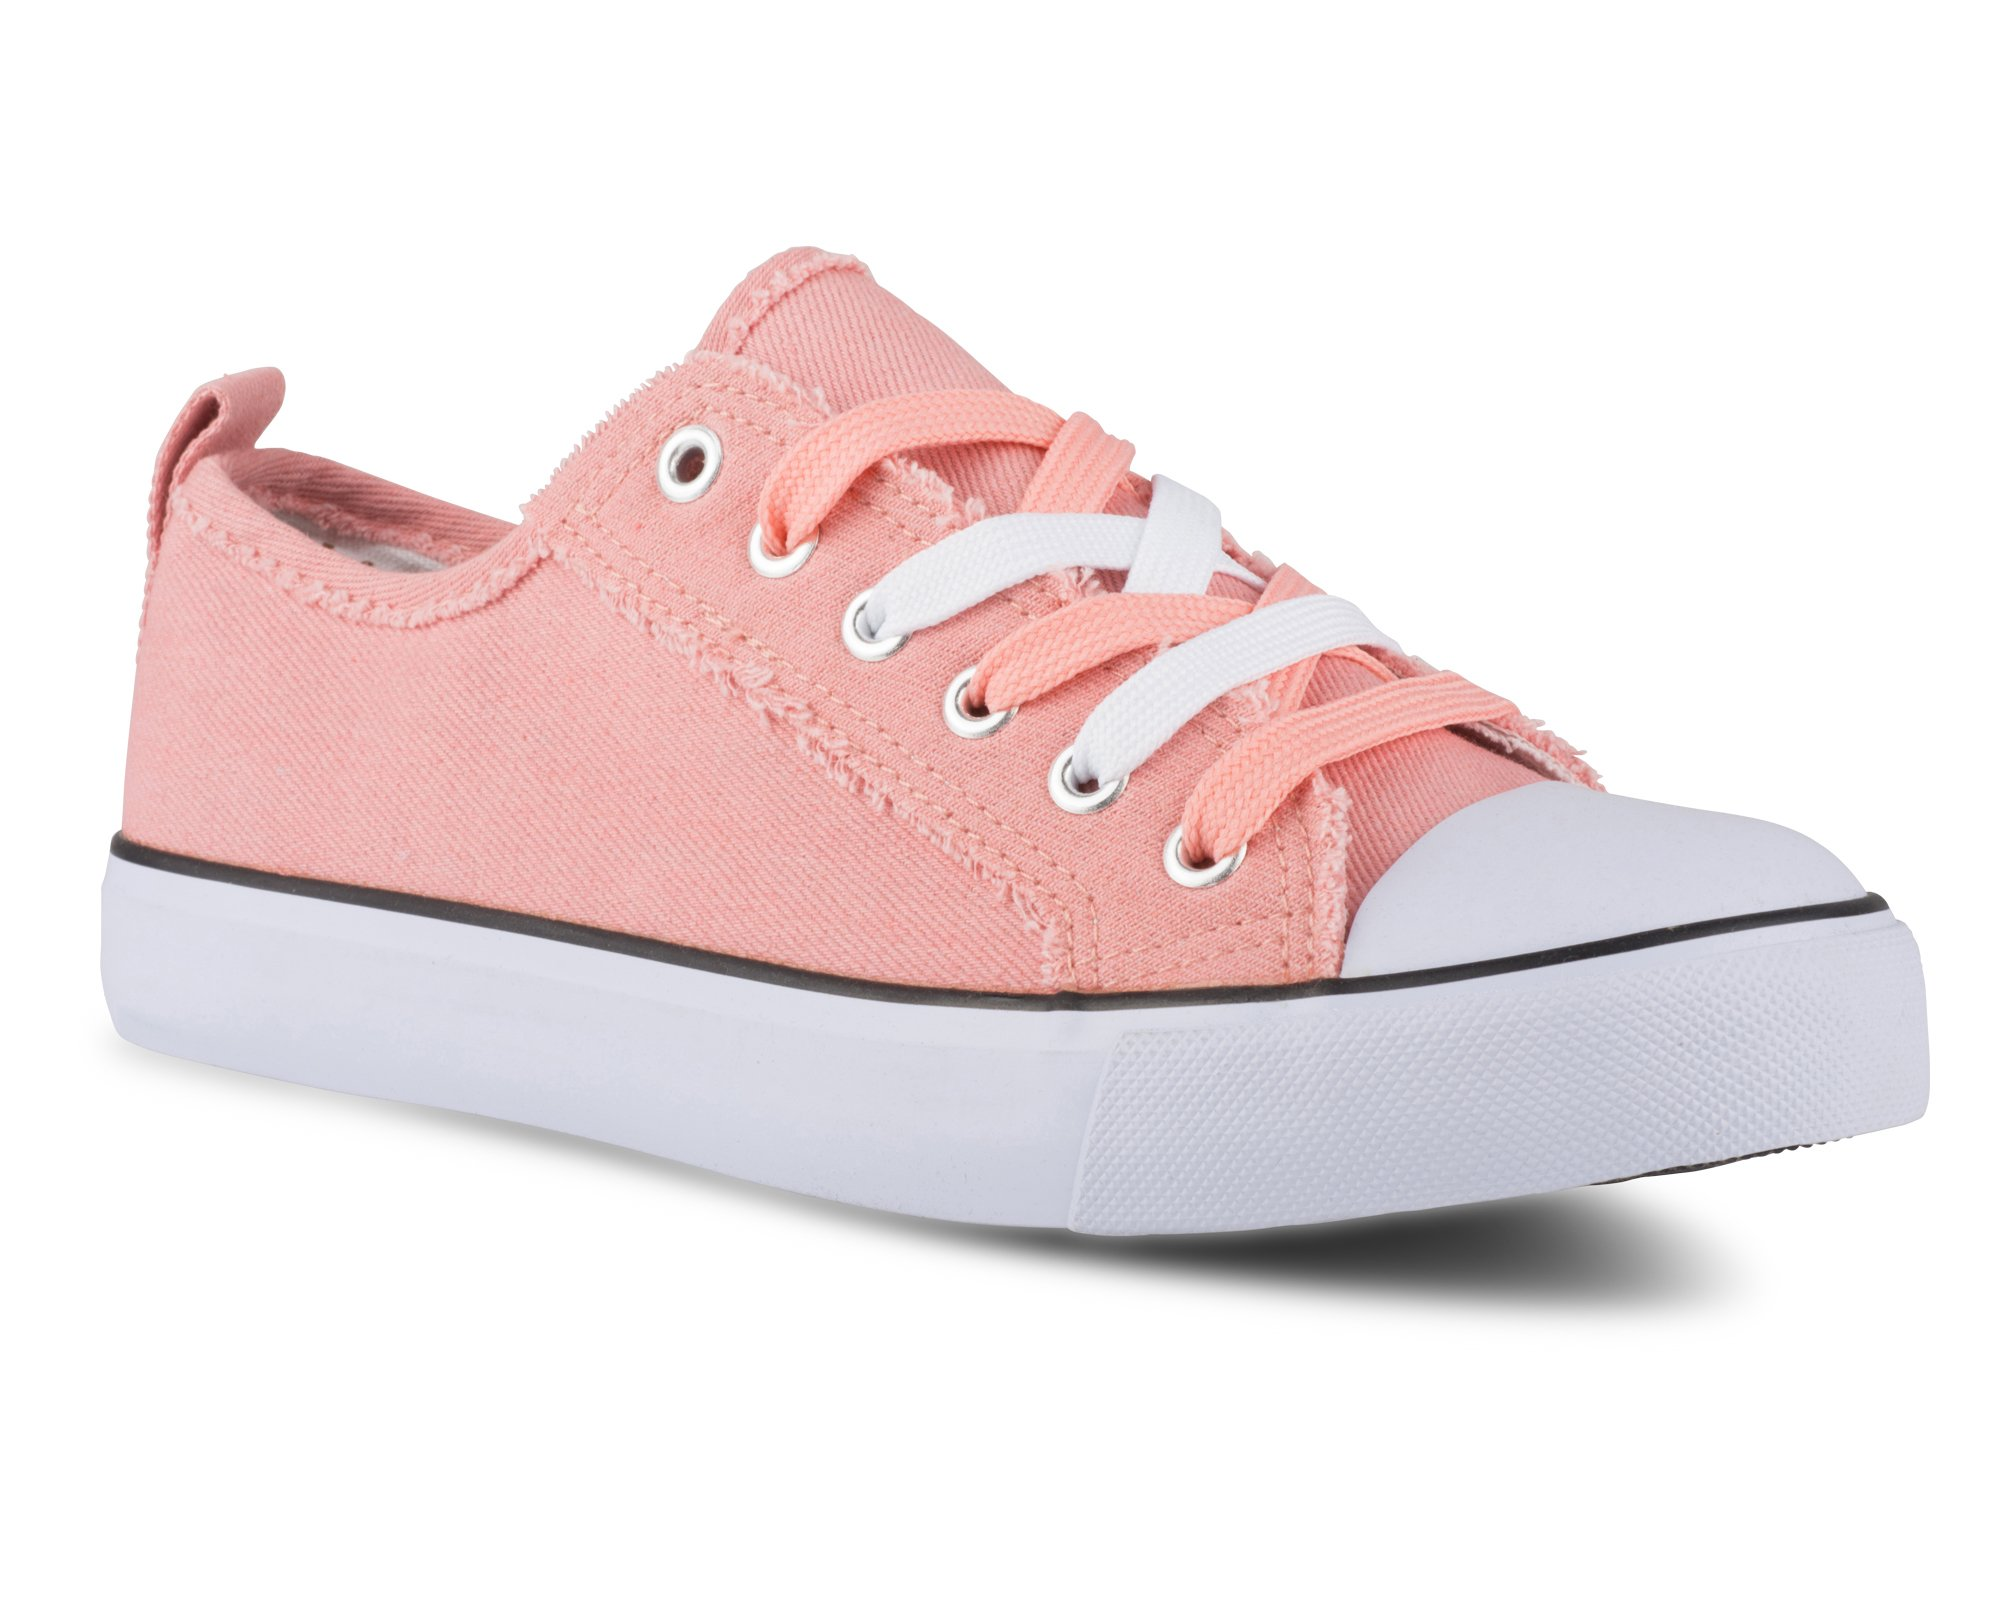 Twisted Women's KIX Lo-Top Frayed Edge Sneakers -KIXLO192SALMON, Size 8